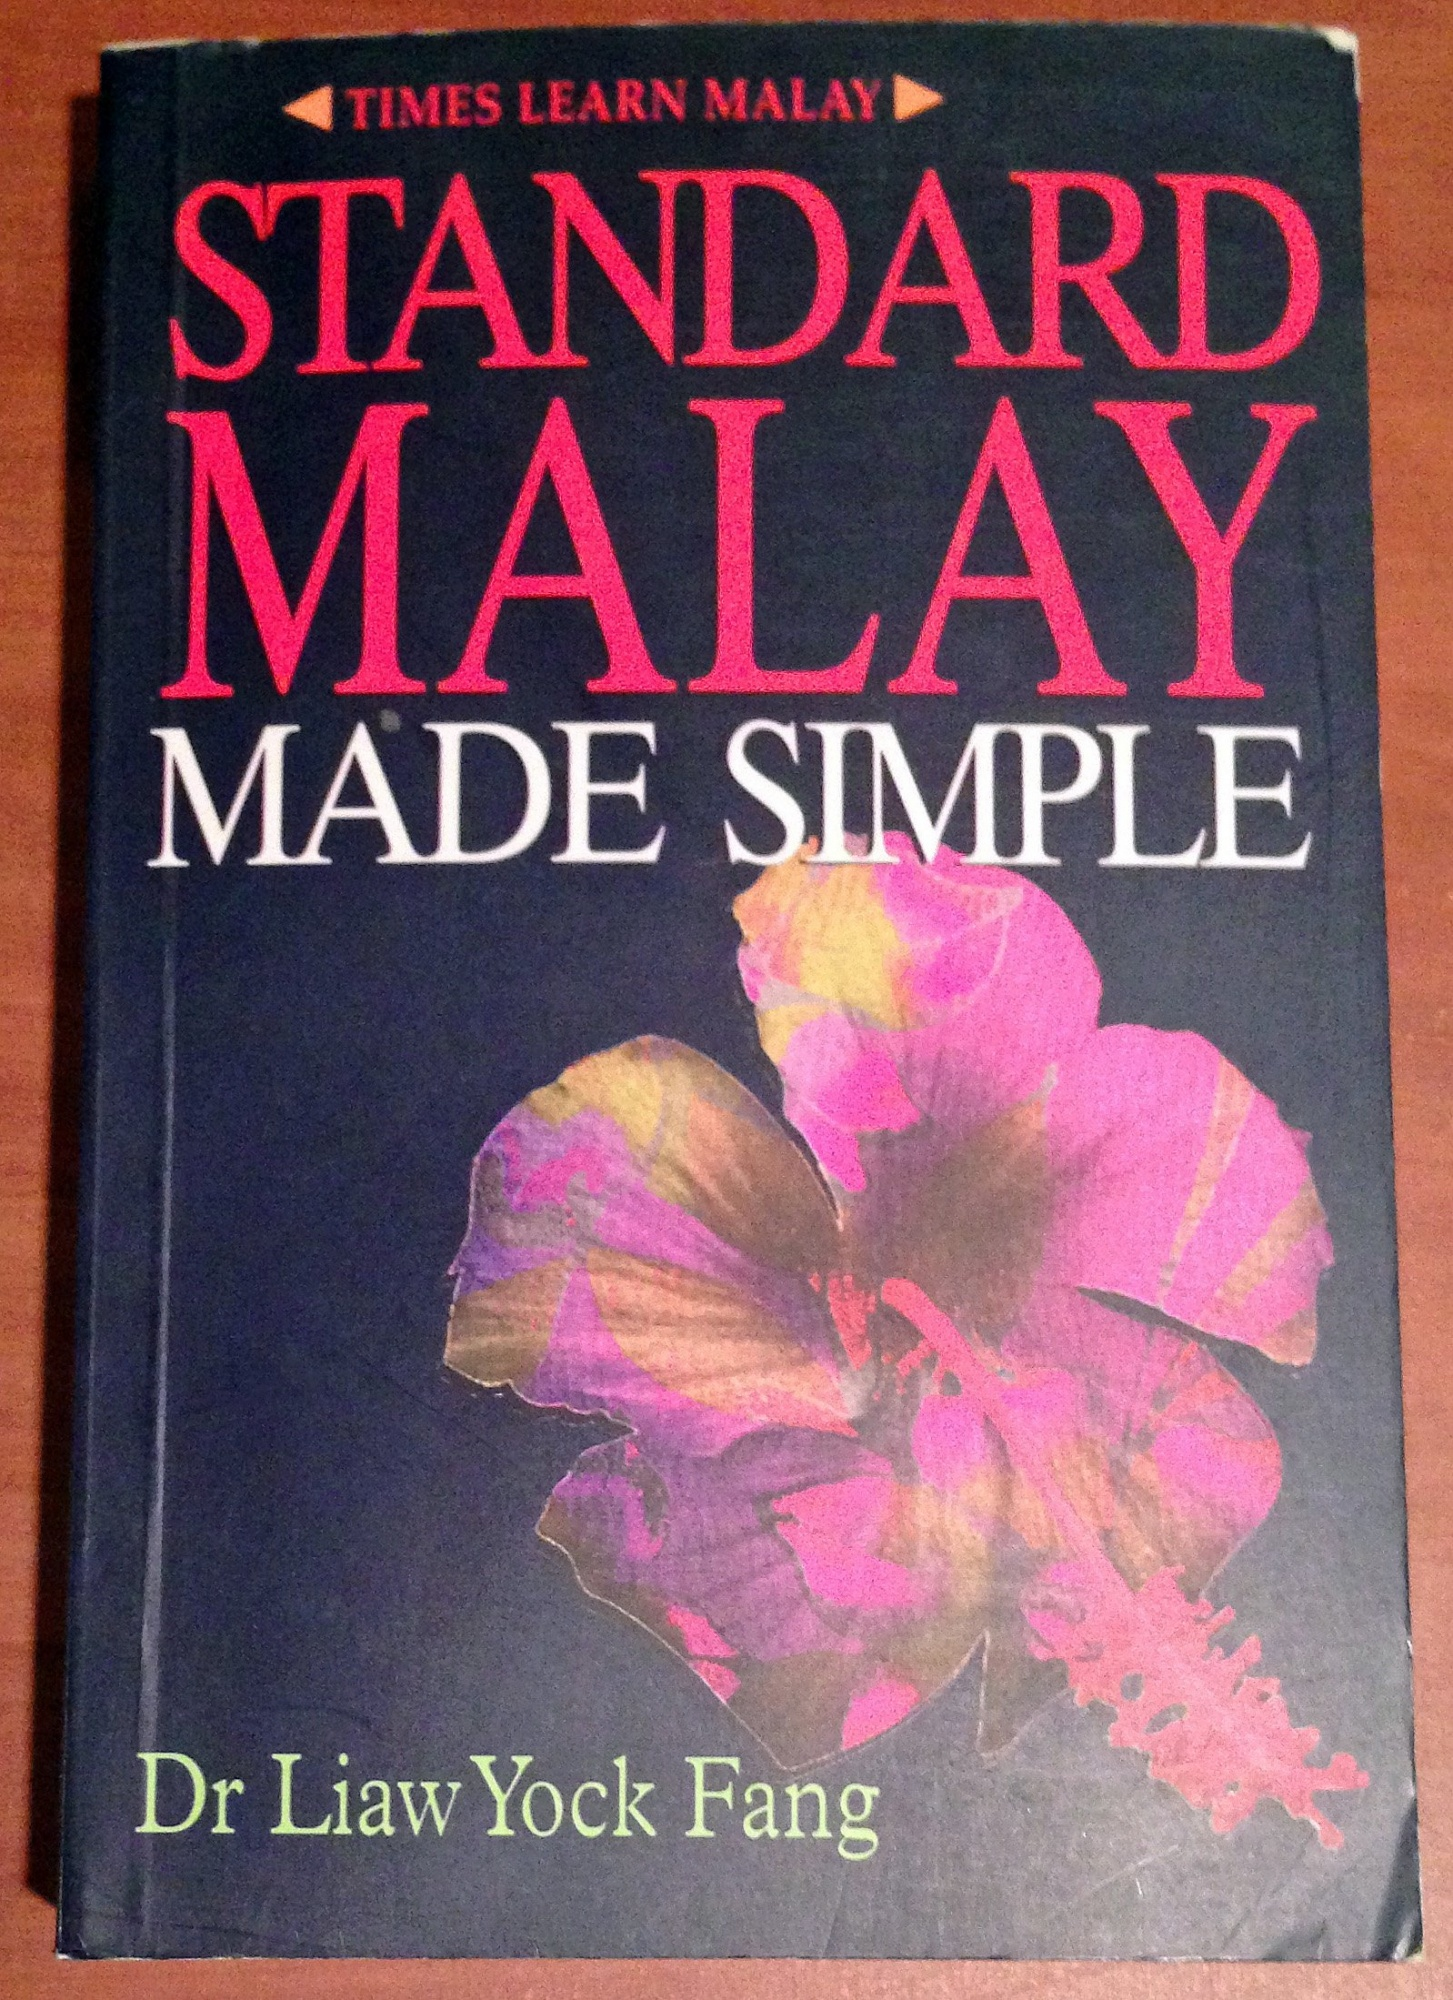 Standard Malay Made Simple by Liaw Yock Fang, ISBN: 9789812042125